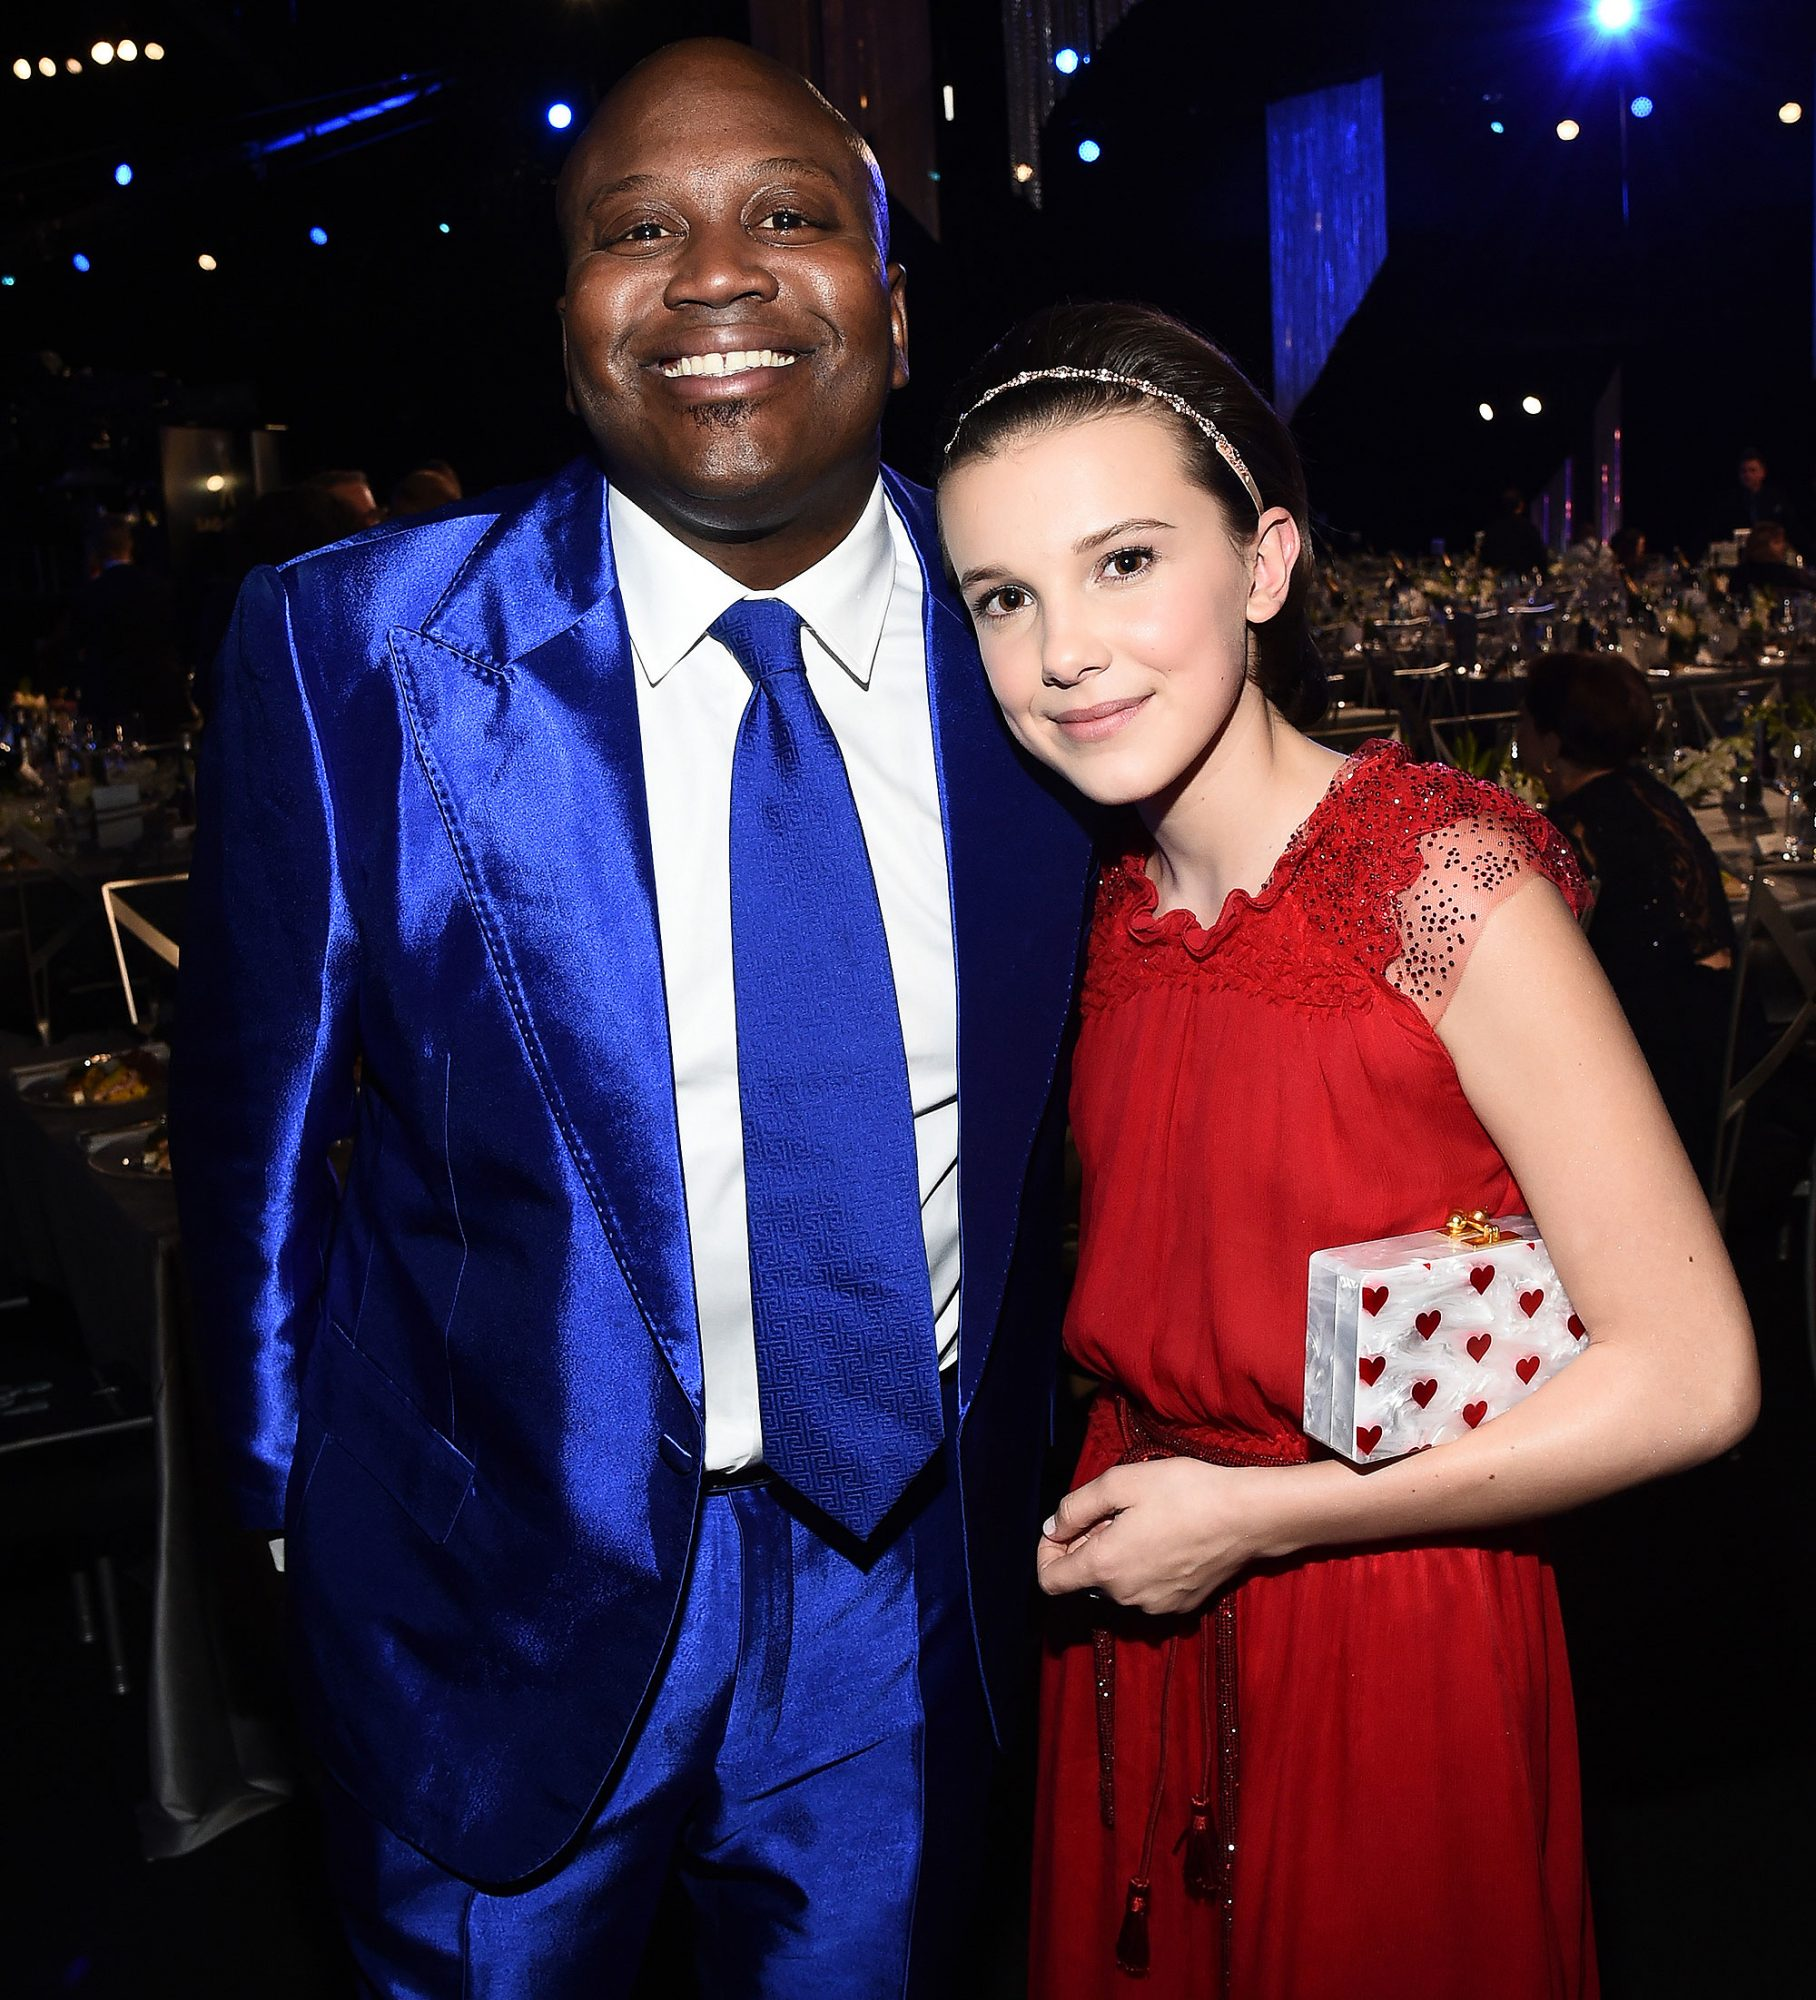 Mandatory Credit: Photo by Buckner/Variety/REX/Shutterstock (8137132e) Tituss Burgess and Millie Bobby Brown The 23rd Annual Screen Actors Guild Awards, Cocktail Party, Los Angeles, USA - 29 Jan 2017